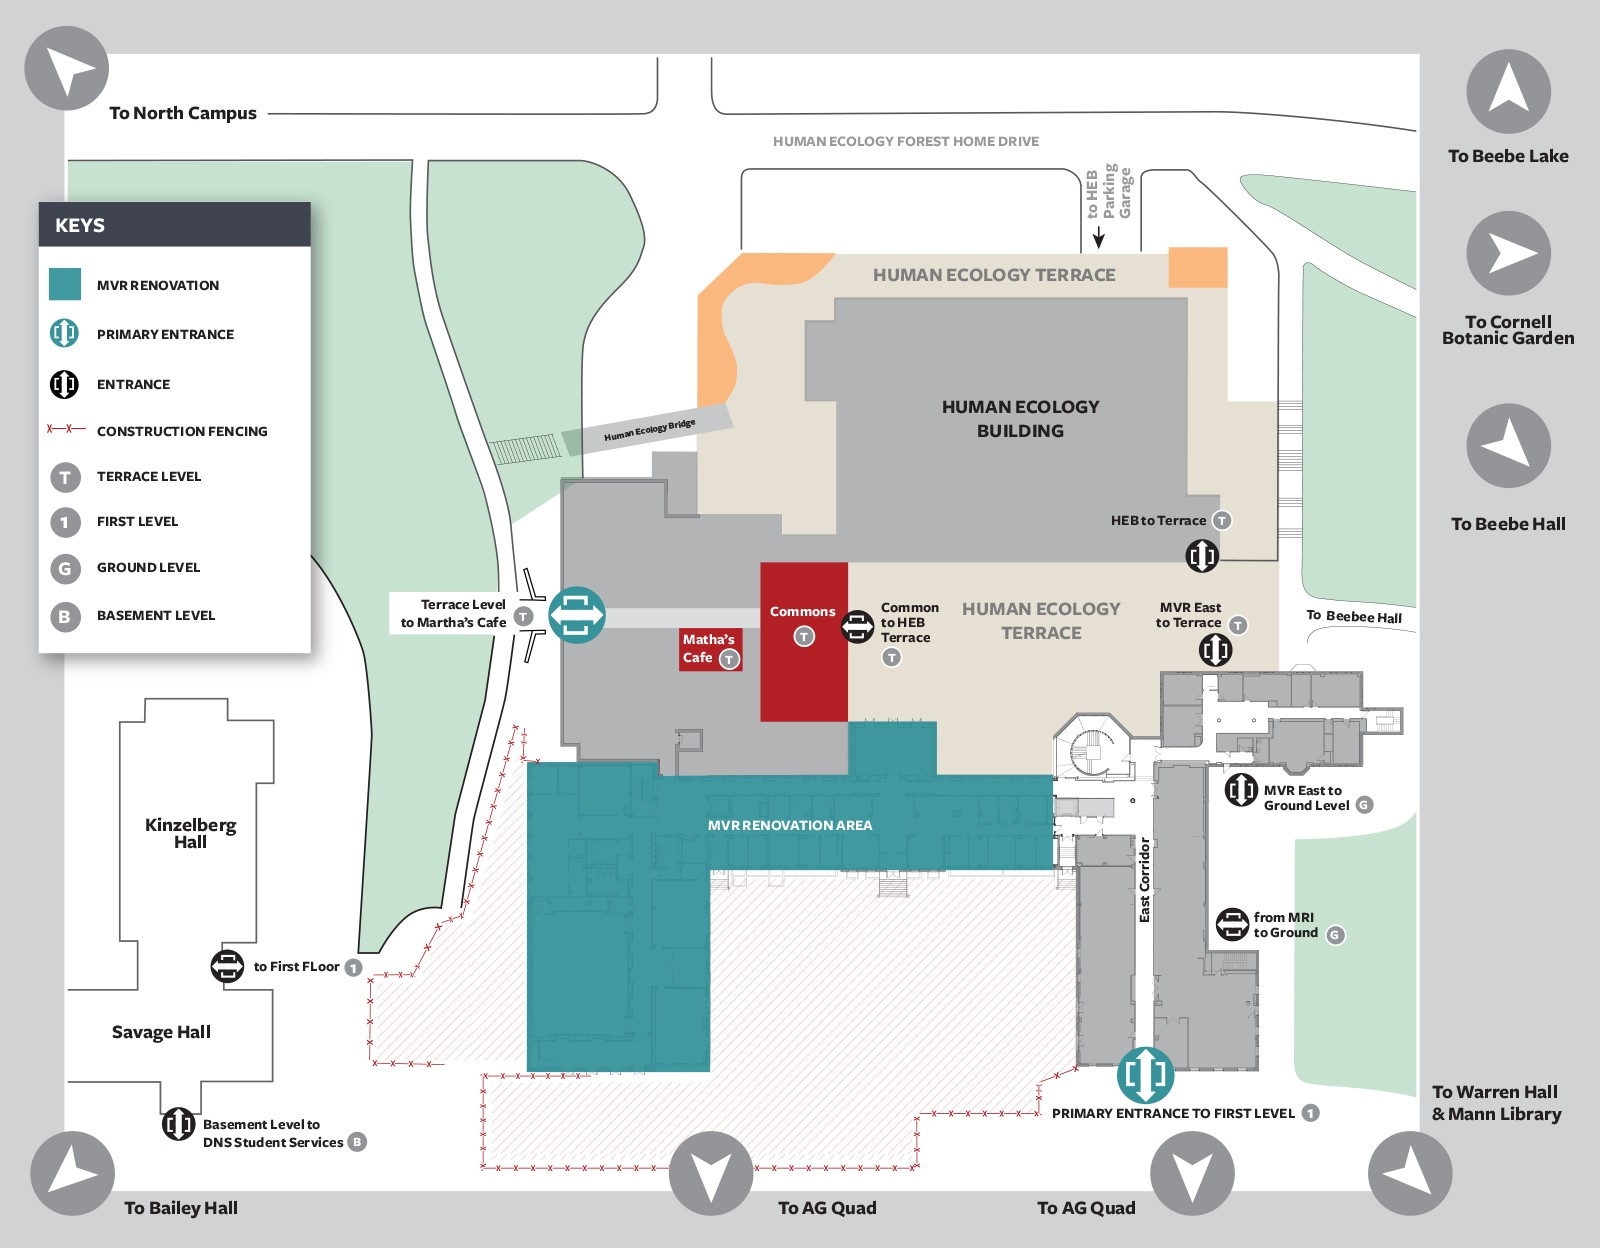 Renovation access map for MVR and HEB